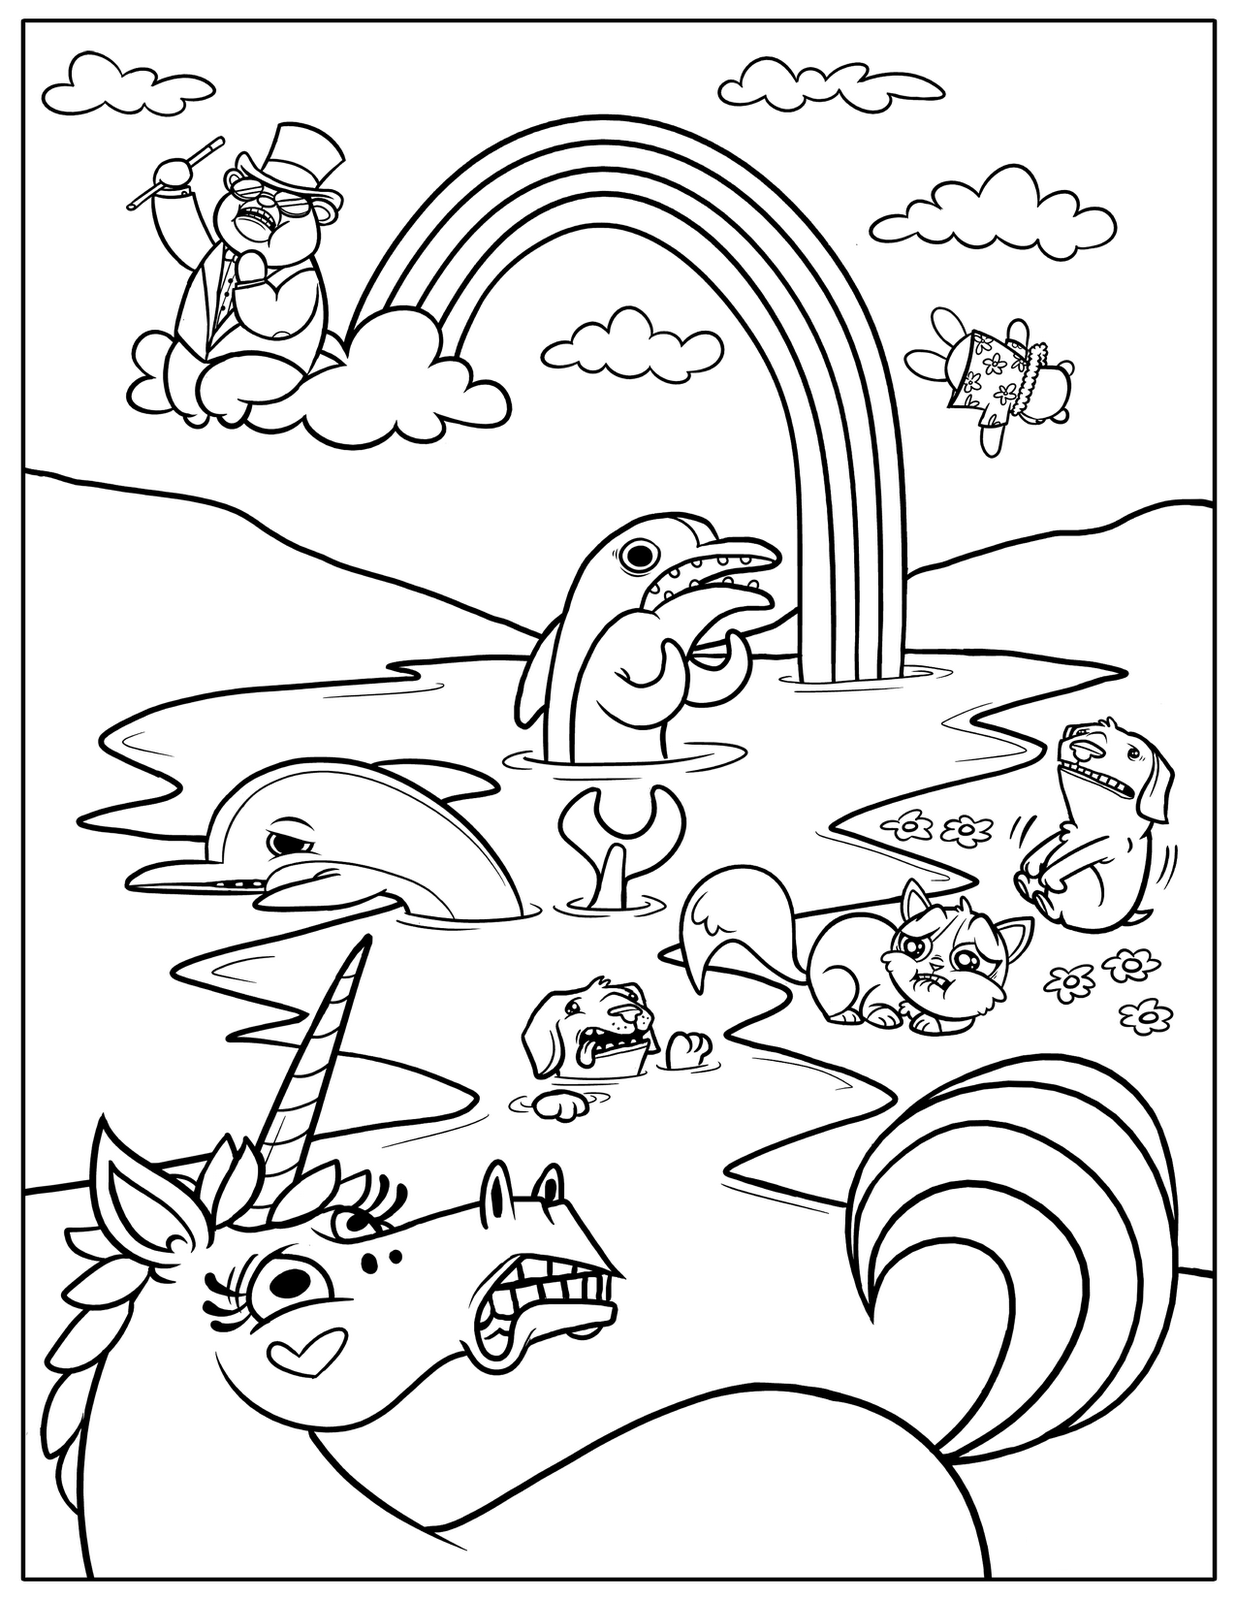 rainbow coloring pages kids printable - Drawing For Children To Colour